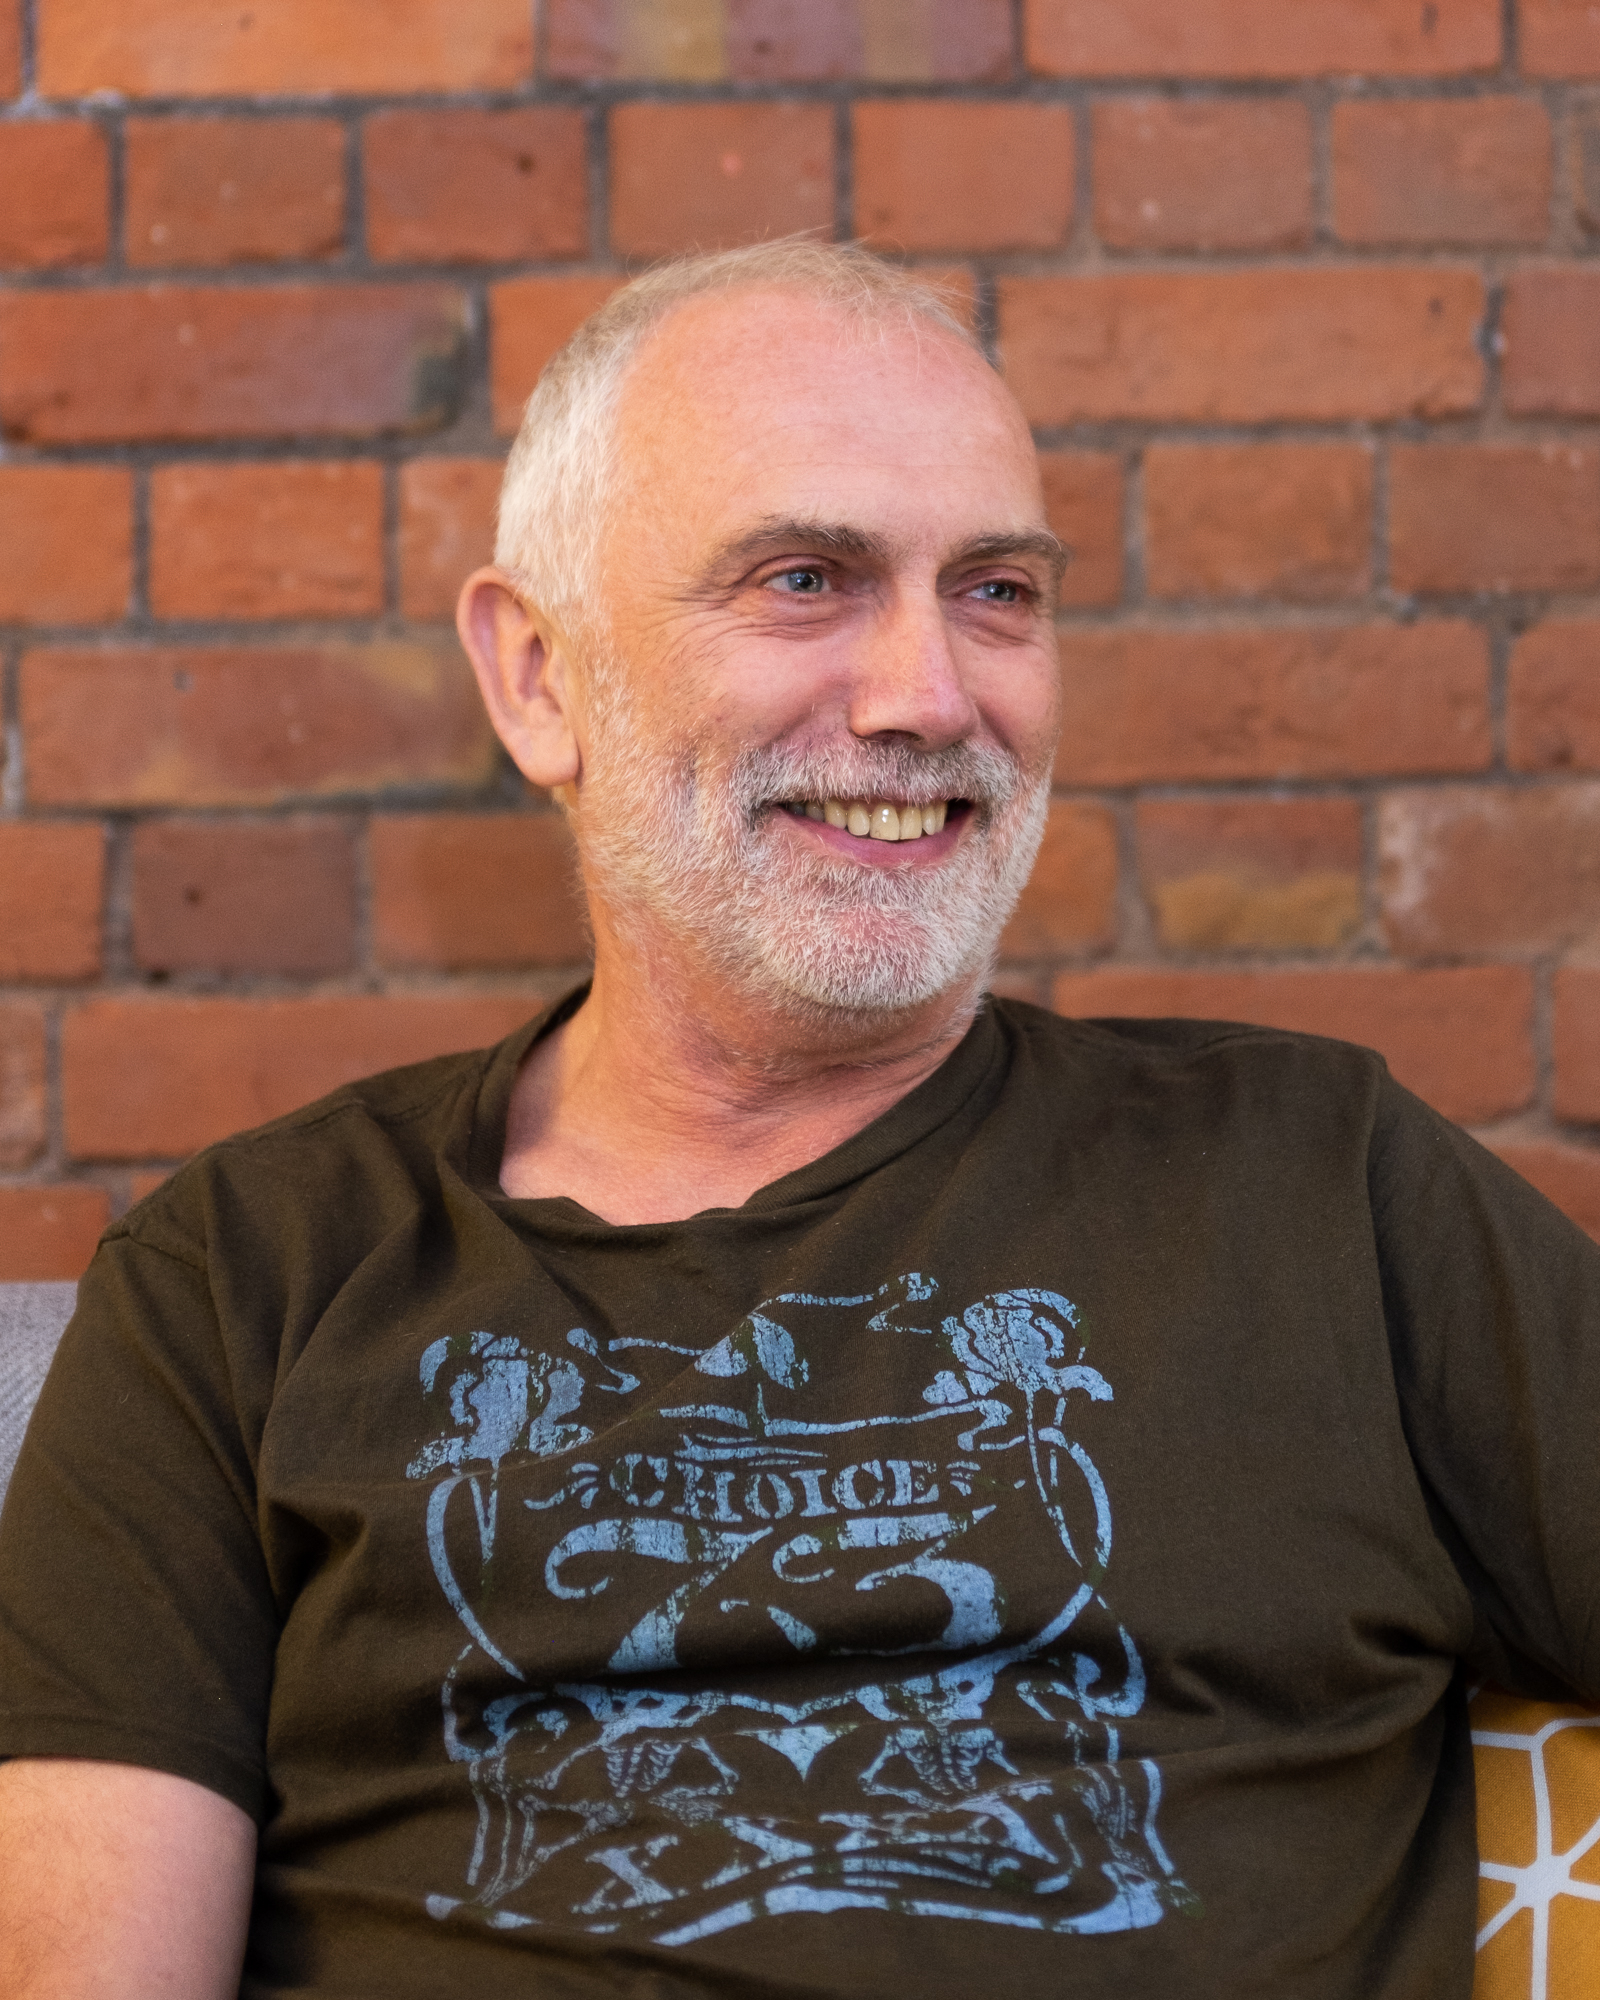 Phil Forder - I have worked in alternative education and the prison service for most of my life. I am passionate about equality, fairness and unlocking potential. I believe that theatre, like all the Arts, is a powerful forum that can stimulate change as well as provide opportunity. I became a trustee because Fio embodies principles I believe in. Website: http://www.philforderart.co.uk